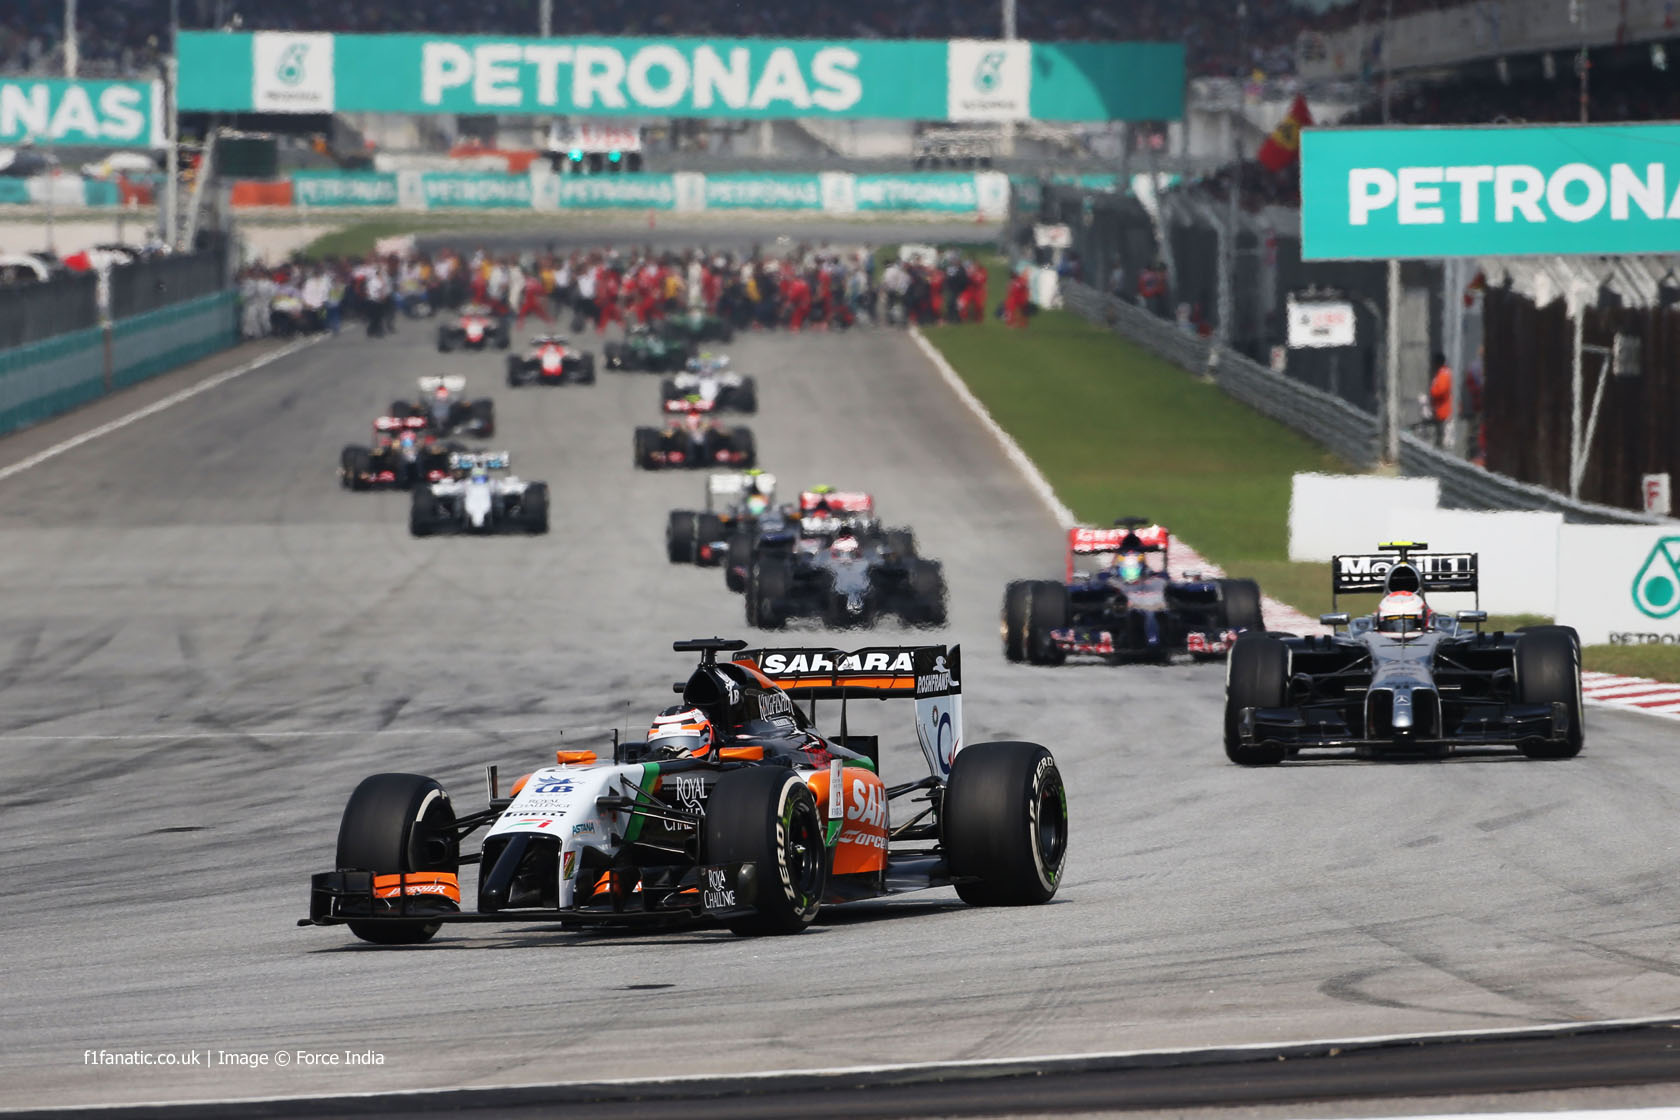 Formation lap, Sepang International Circuit, 2014